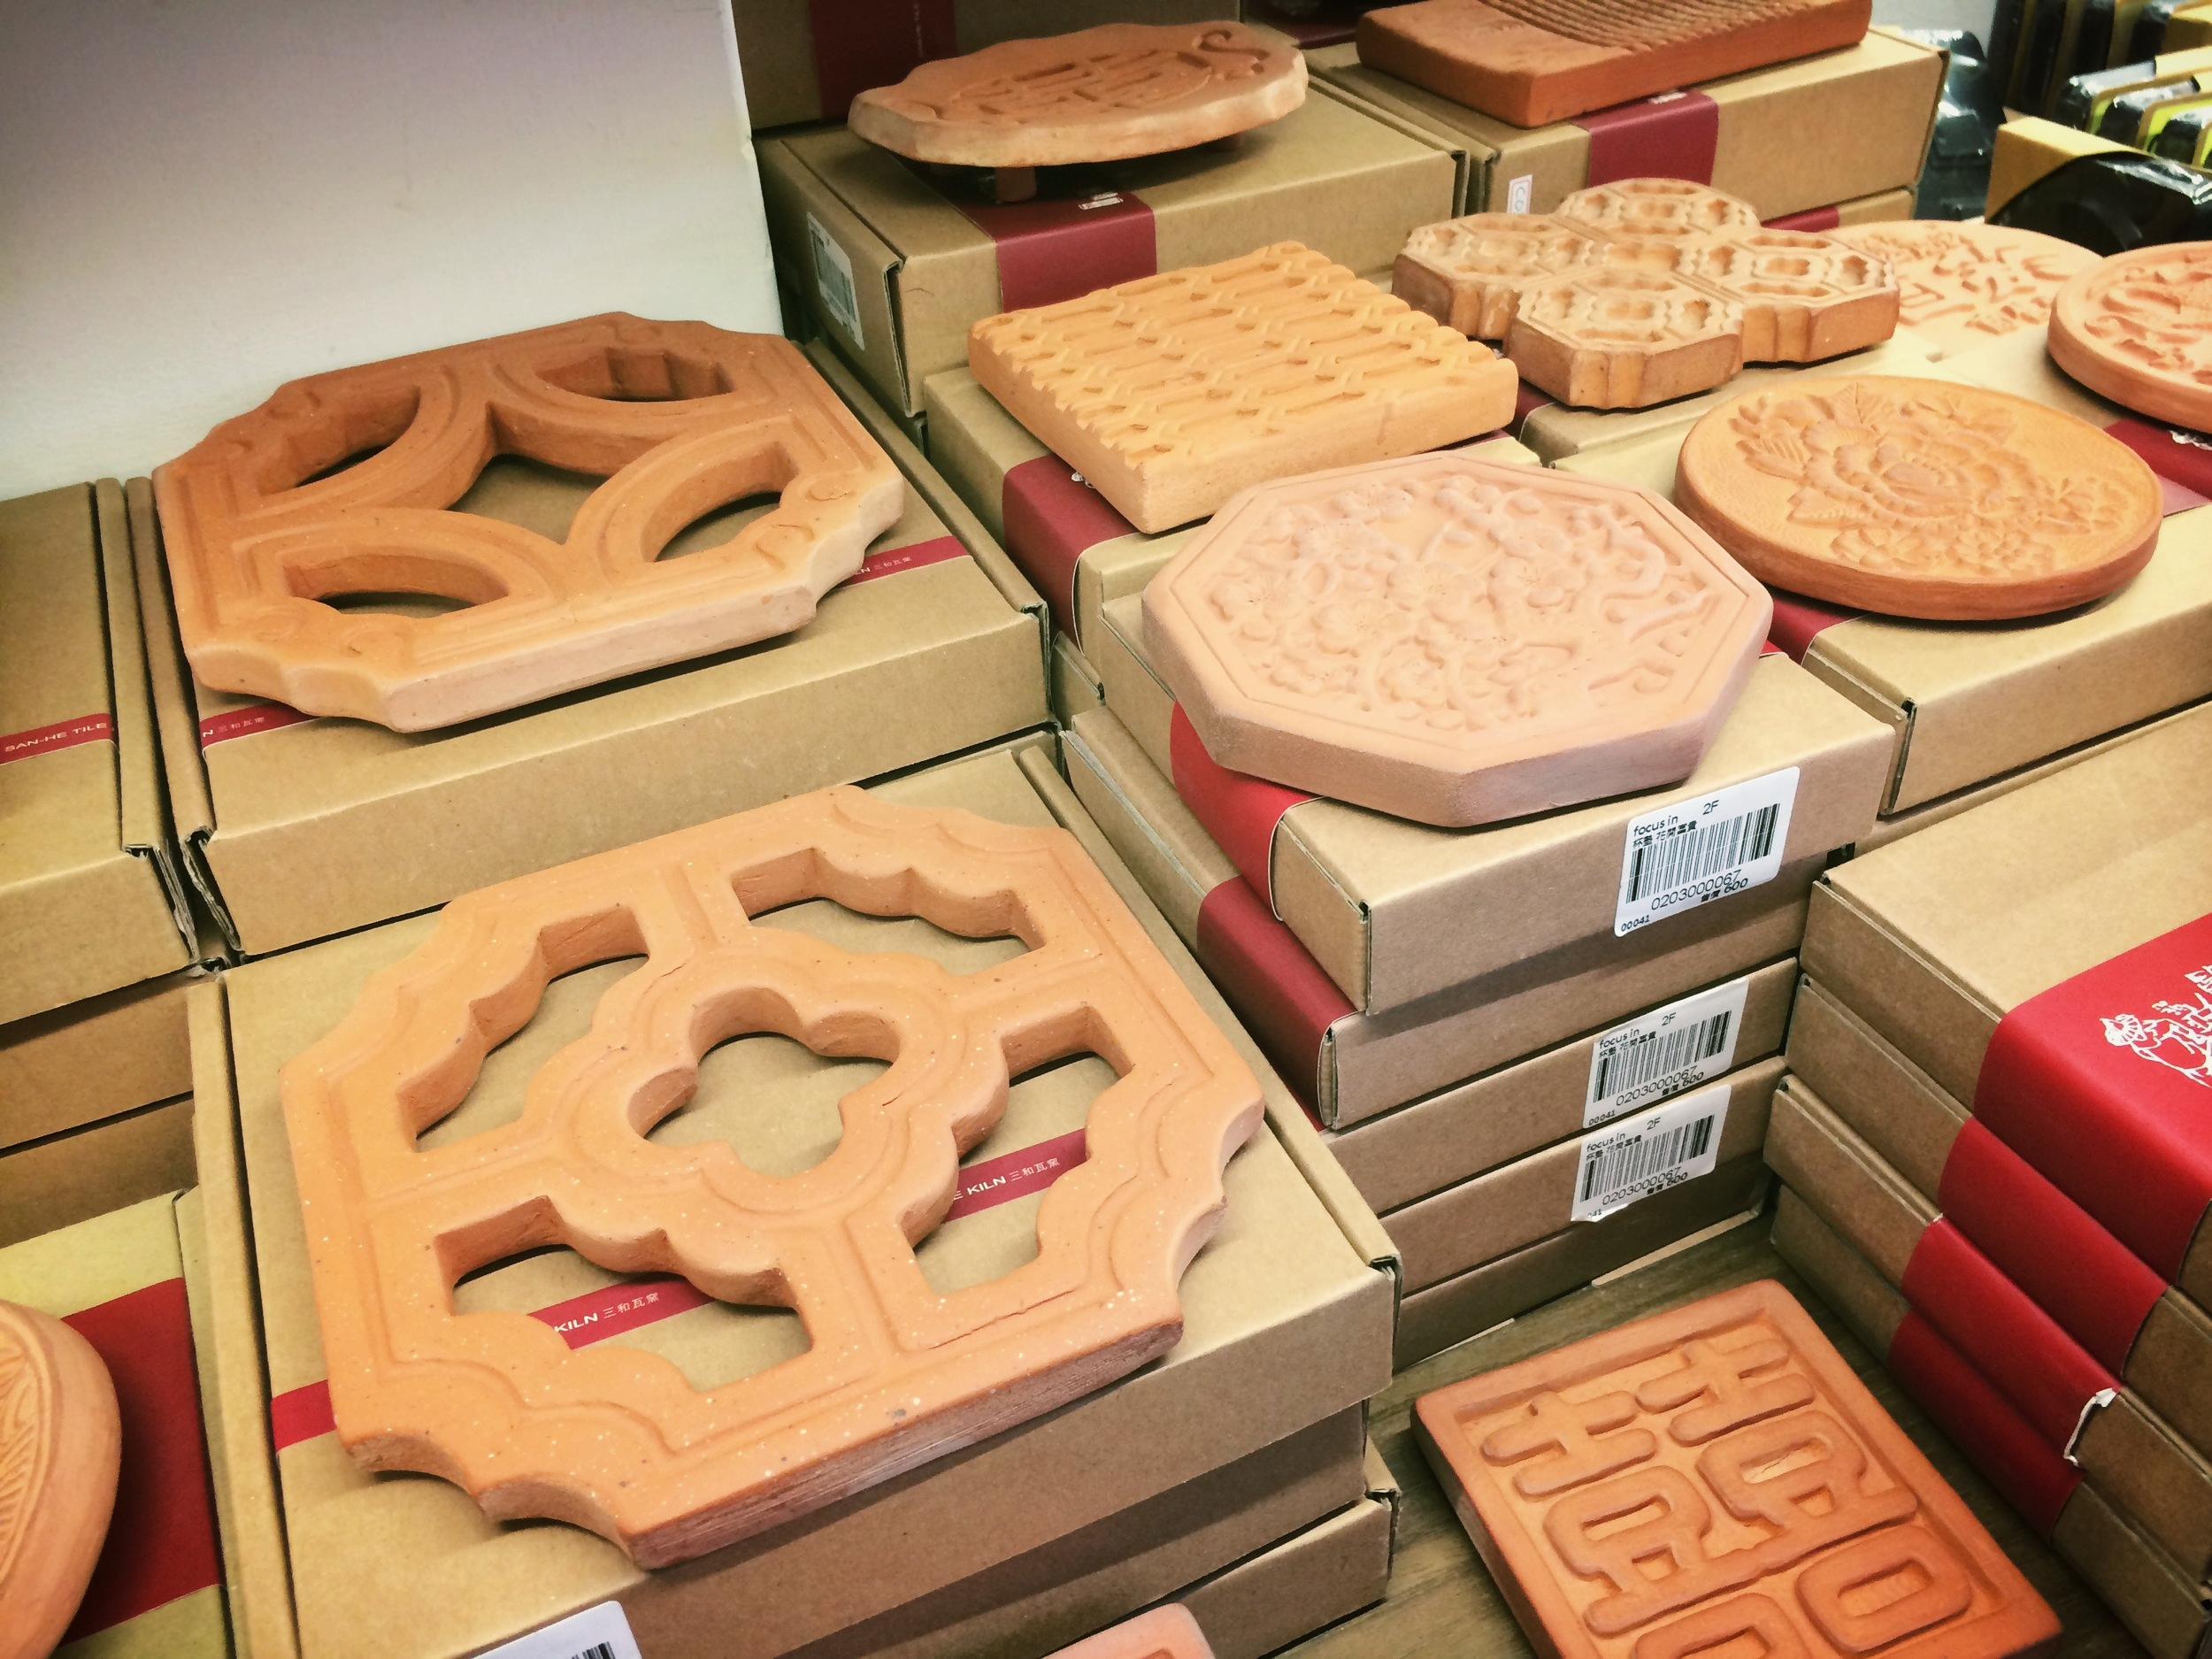 Clay tiles. I bought one to use as a dish soap.